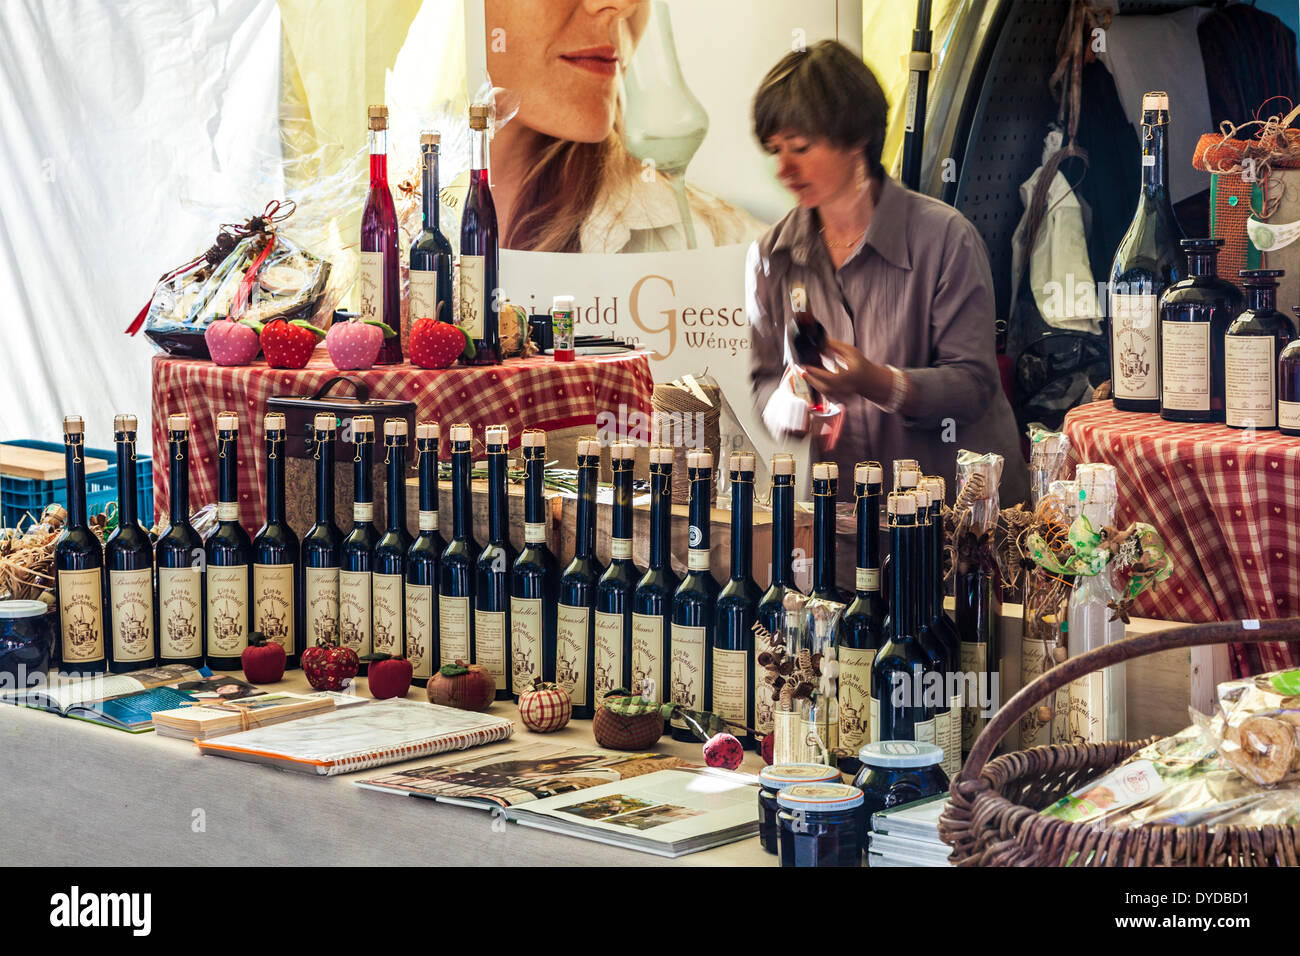 A stall selling a range of clear fruit brandies known as eau de vie at the market in the Place Guillaume II in Luxembourg. - Stock Image